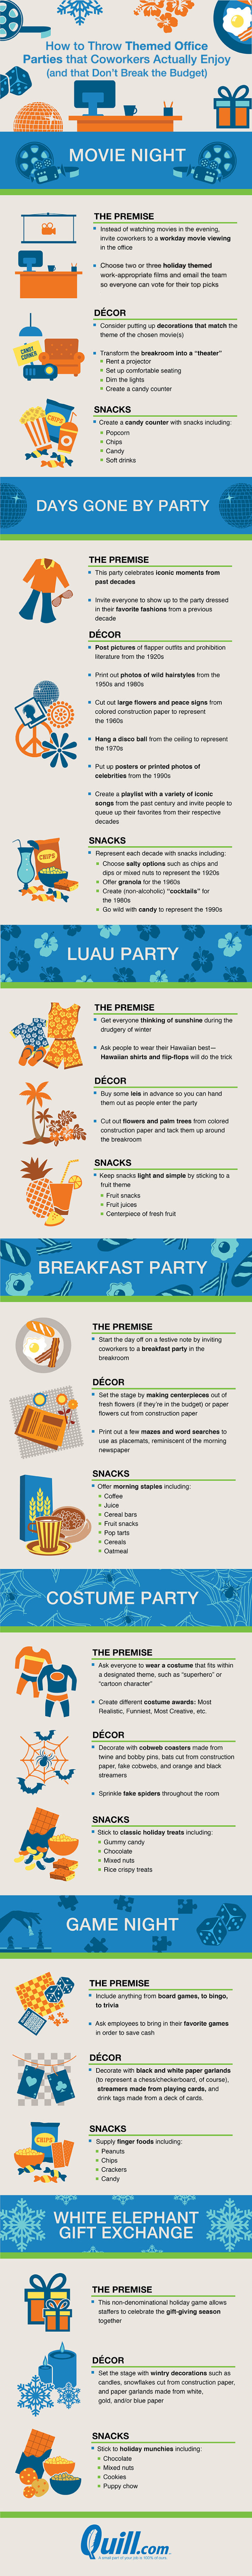 Budgeted But Fun Themed Office Party Ideas - Infographic